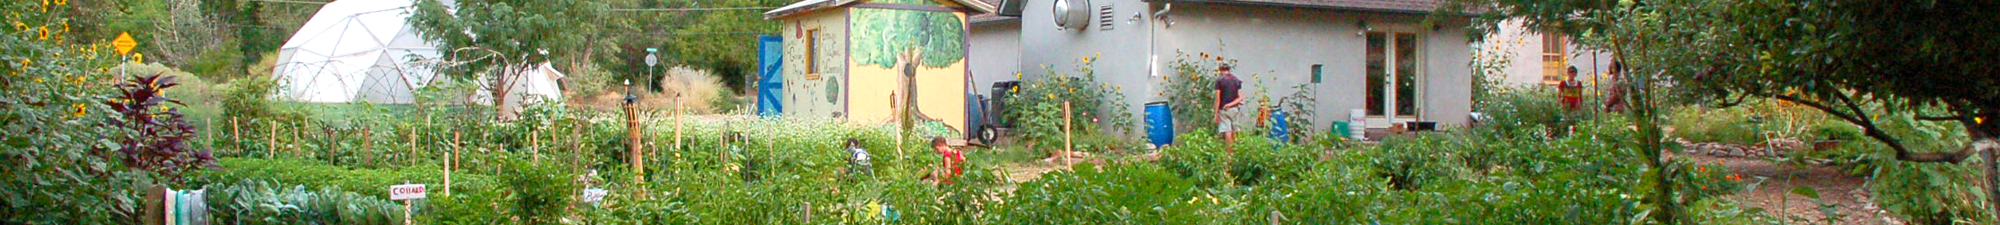 Youth Garden Project in Moab